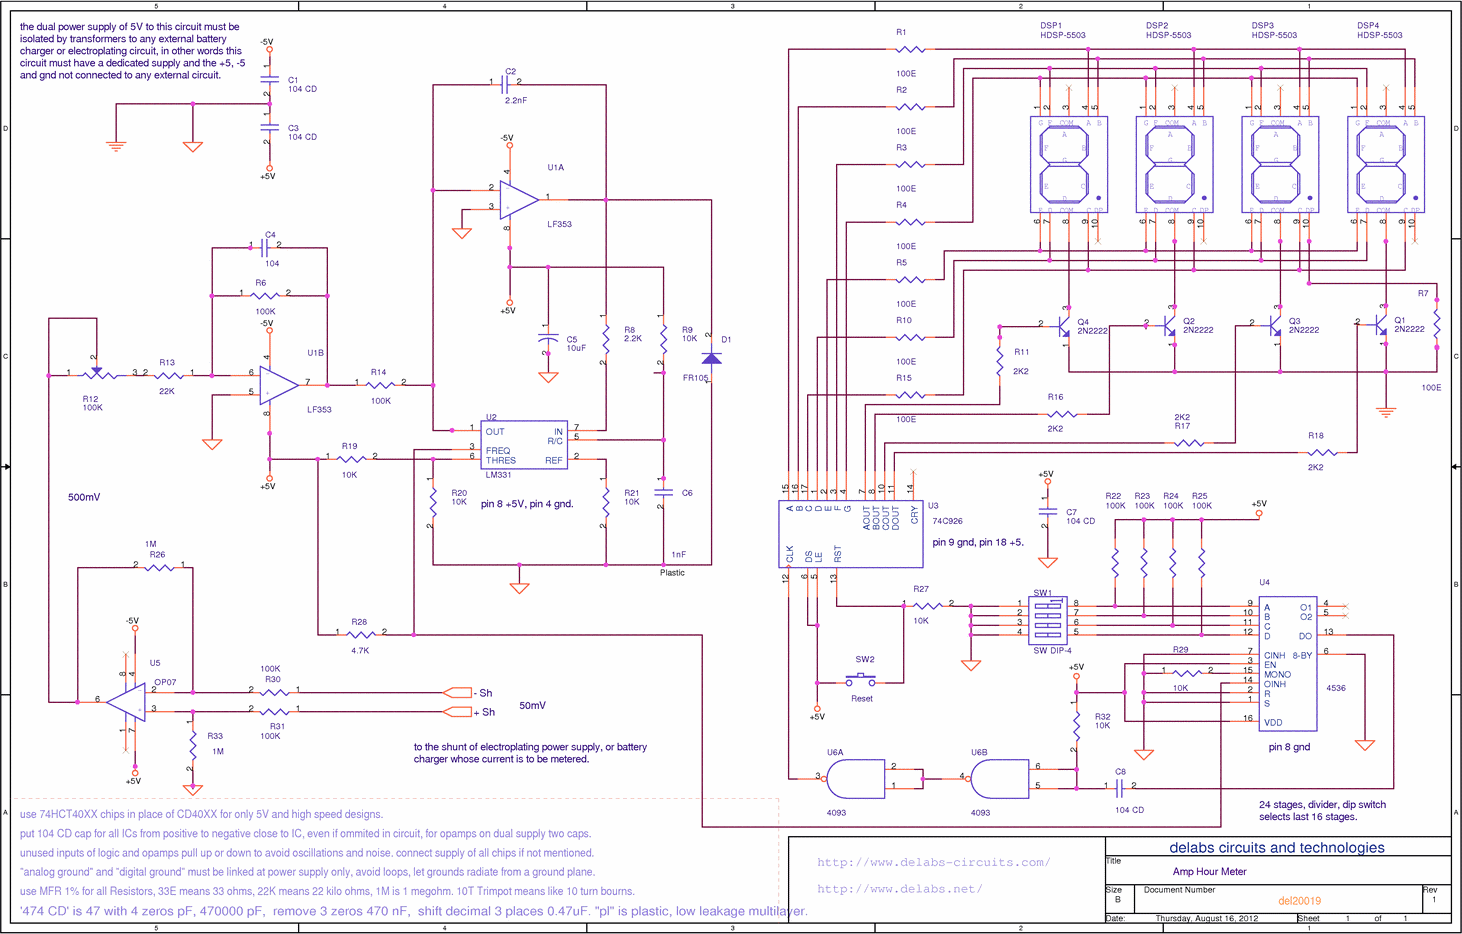 Schematics Of Delabs Amp Hour Meter Using Lm331 And 74c926 Tech Fm Transmitter Circuit Transistors Gadgetronicx